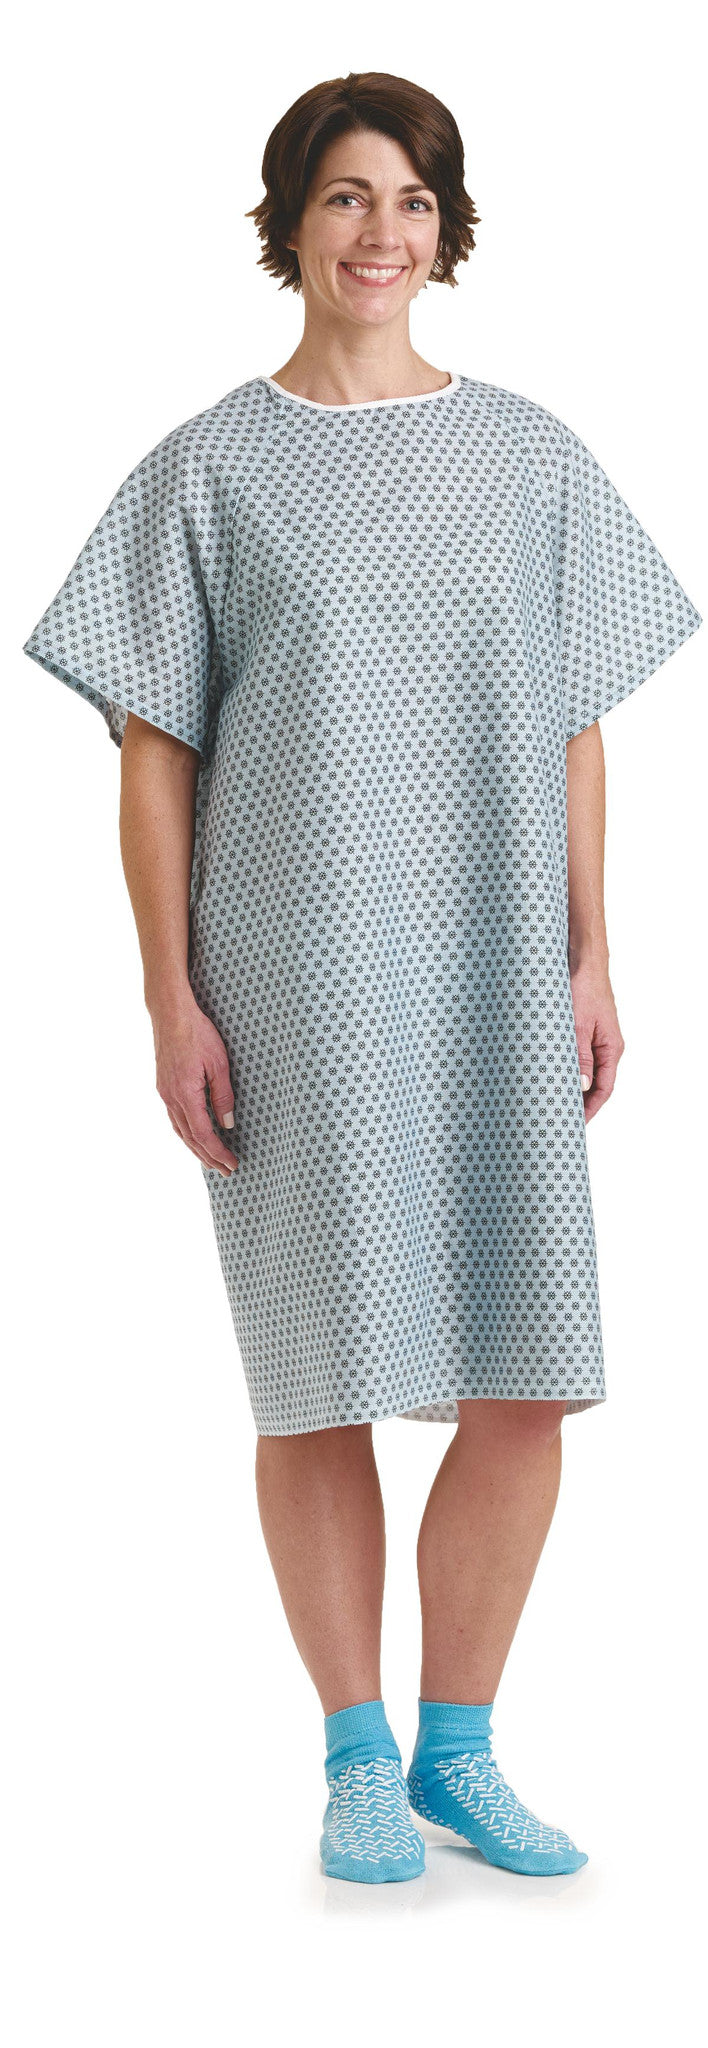 Star Straight Back Closure Hospital Gowns 2 PACK - BH Medwear